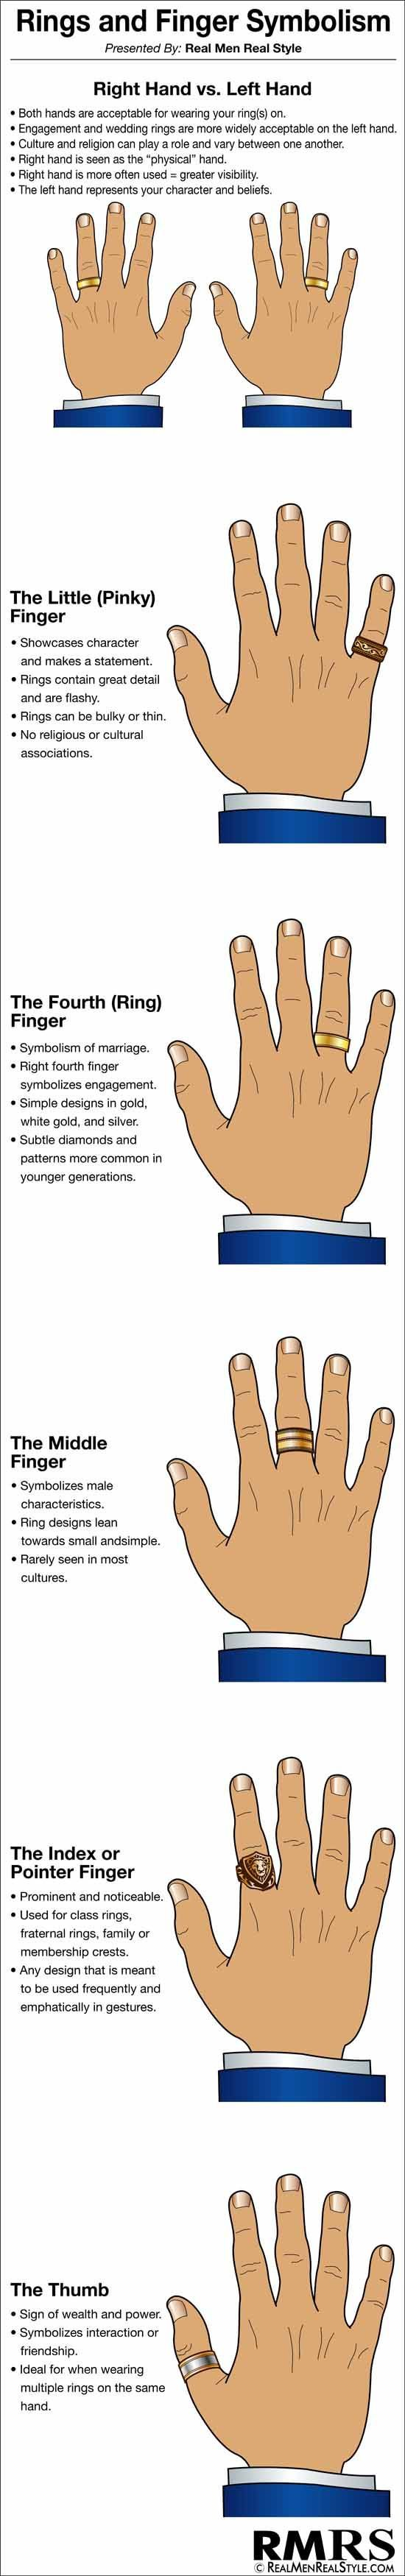 Ring Finger & Symbolism Infographic | Man's Guide To Rings & Hand Jewelry (via /nerdfitness/)